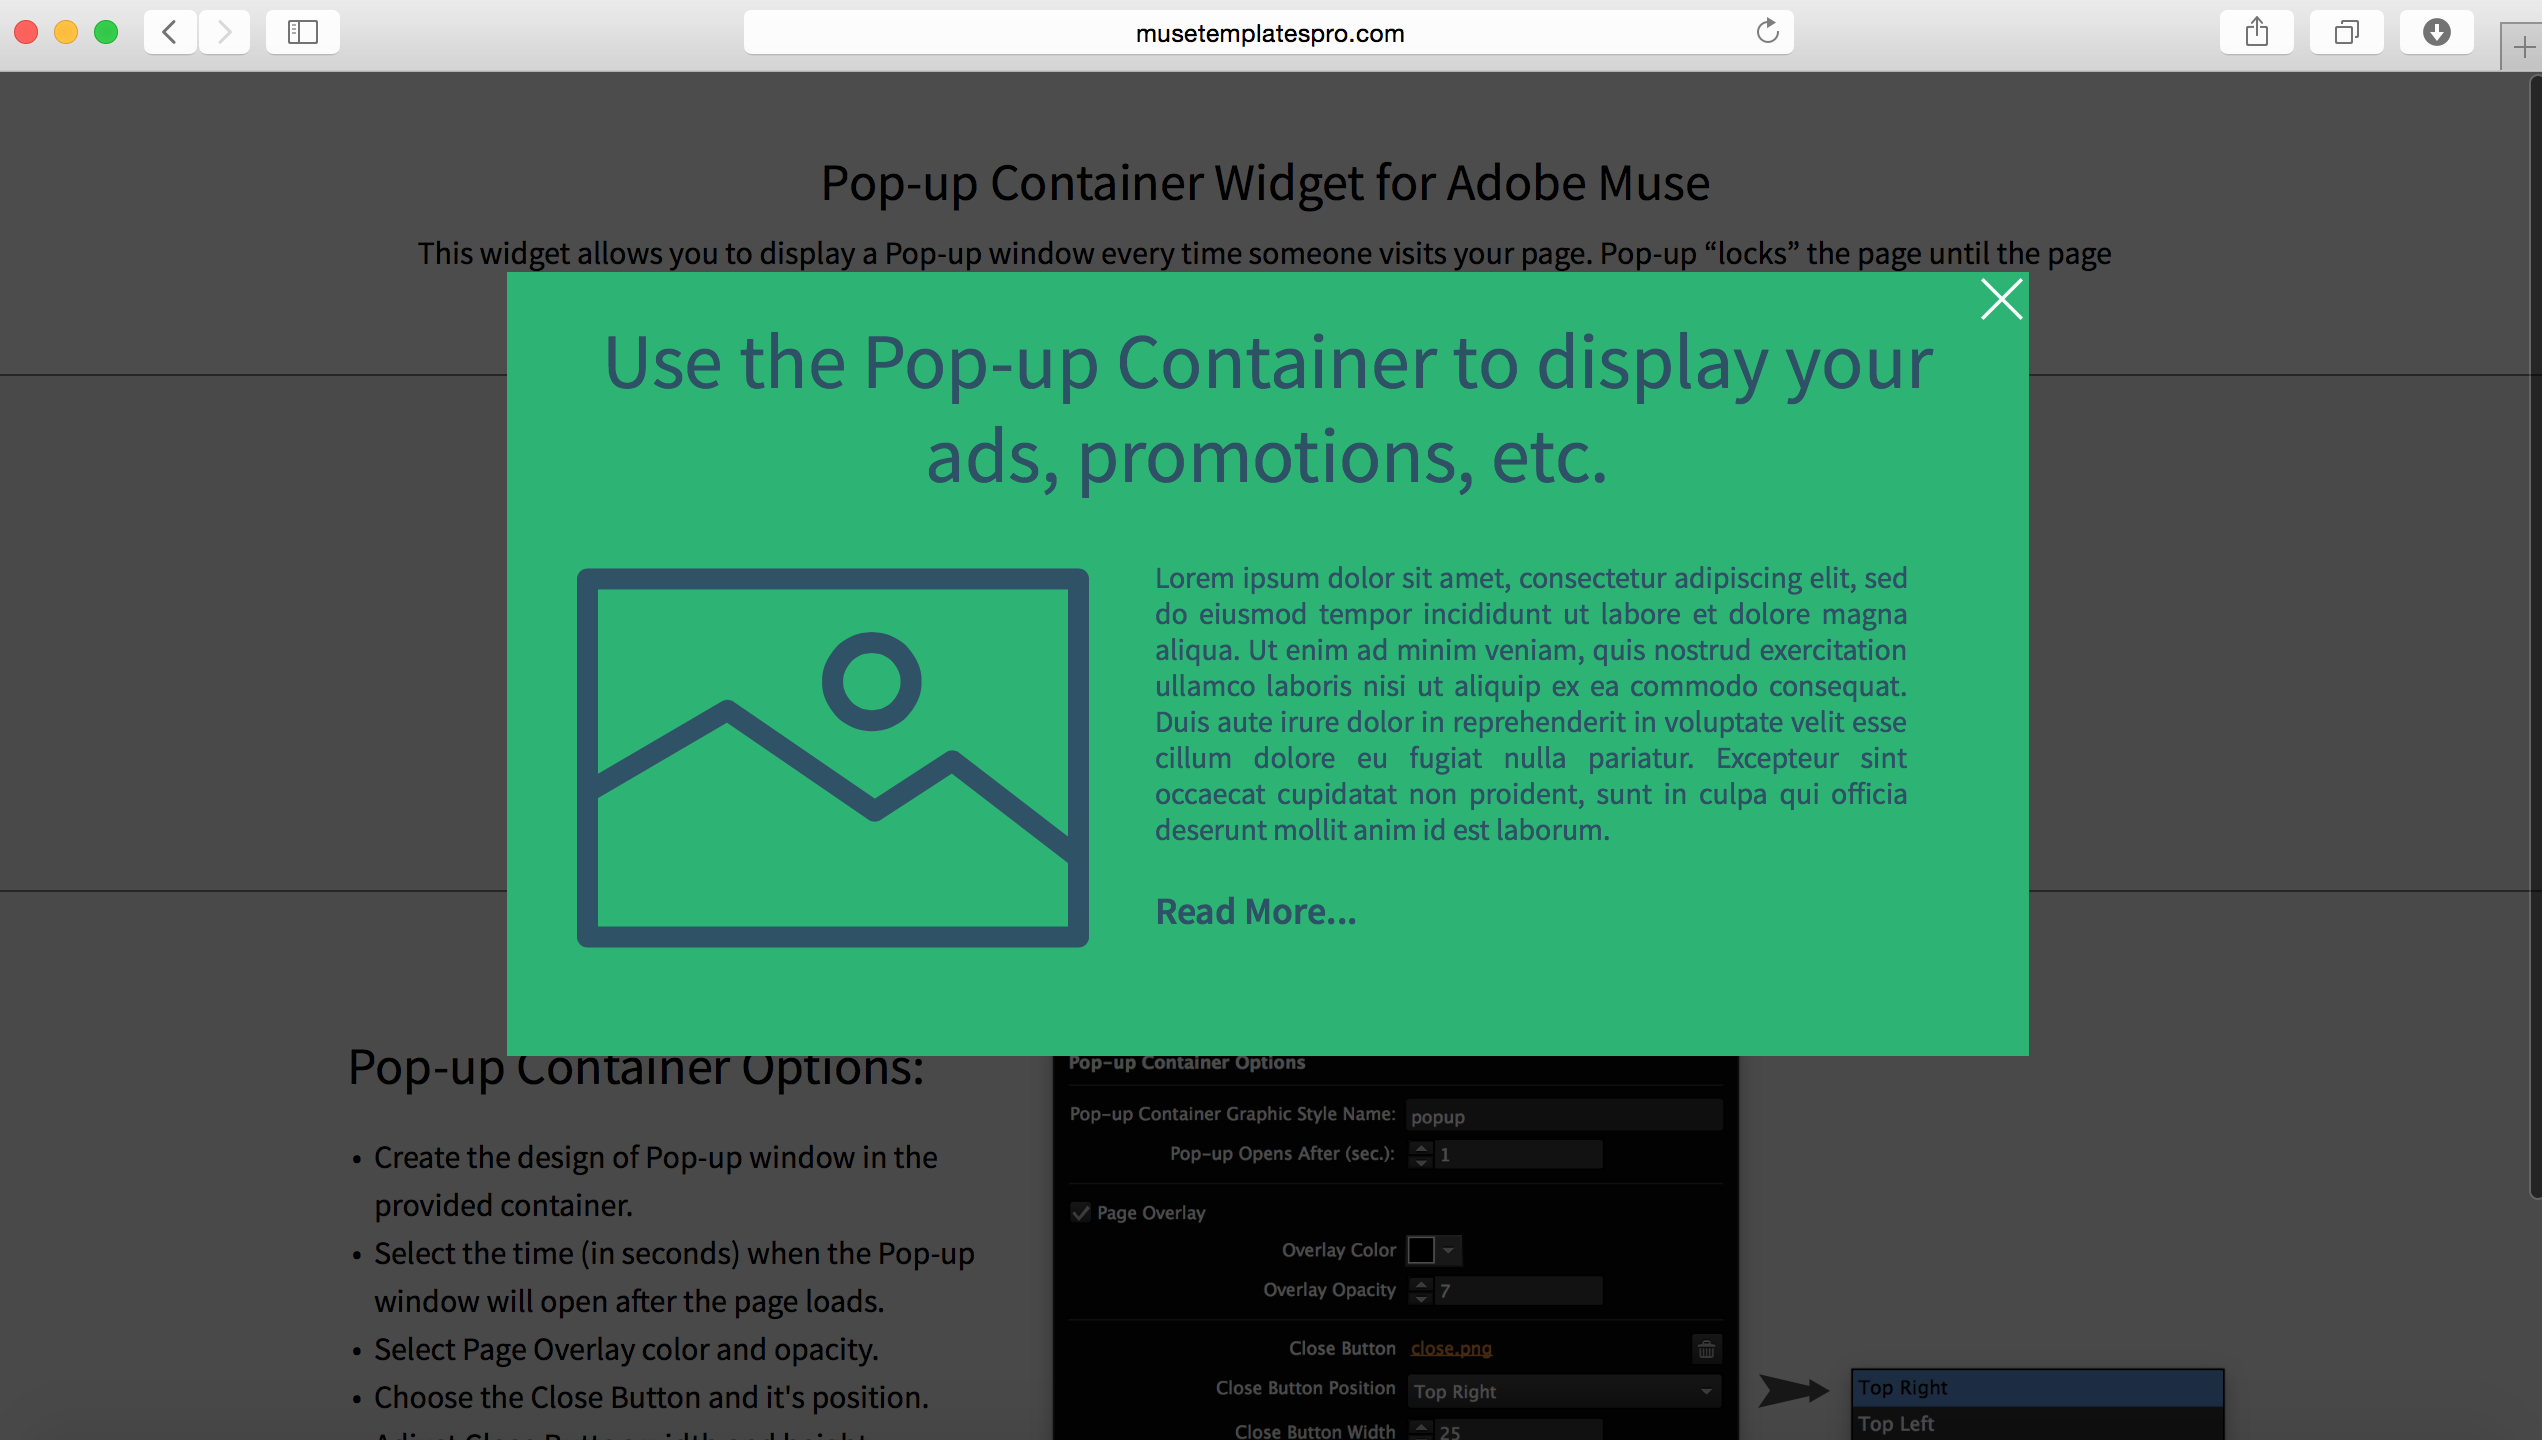 Pop-up Container Adobe Muse Widget